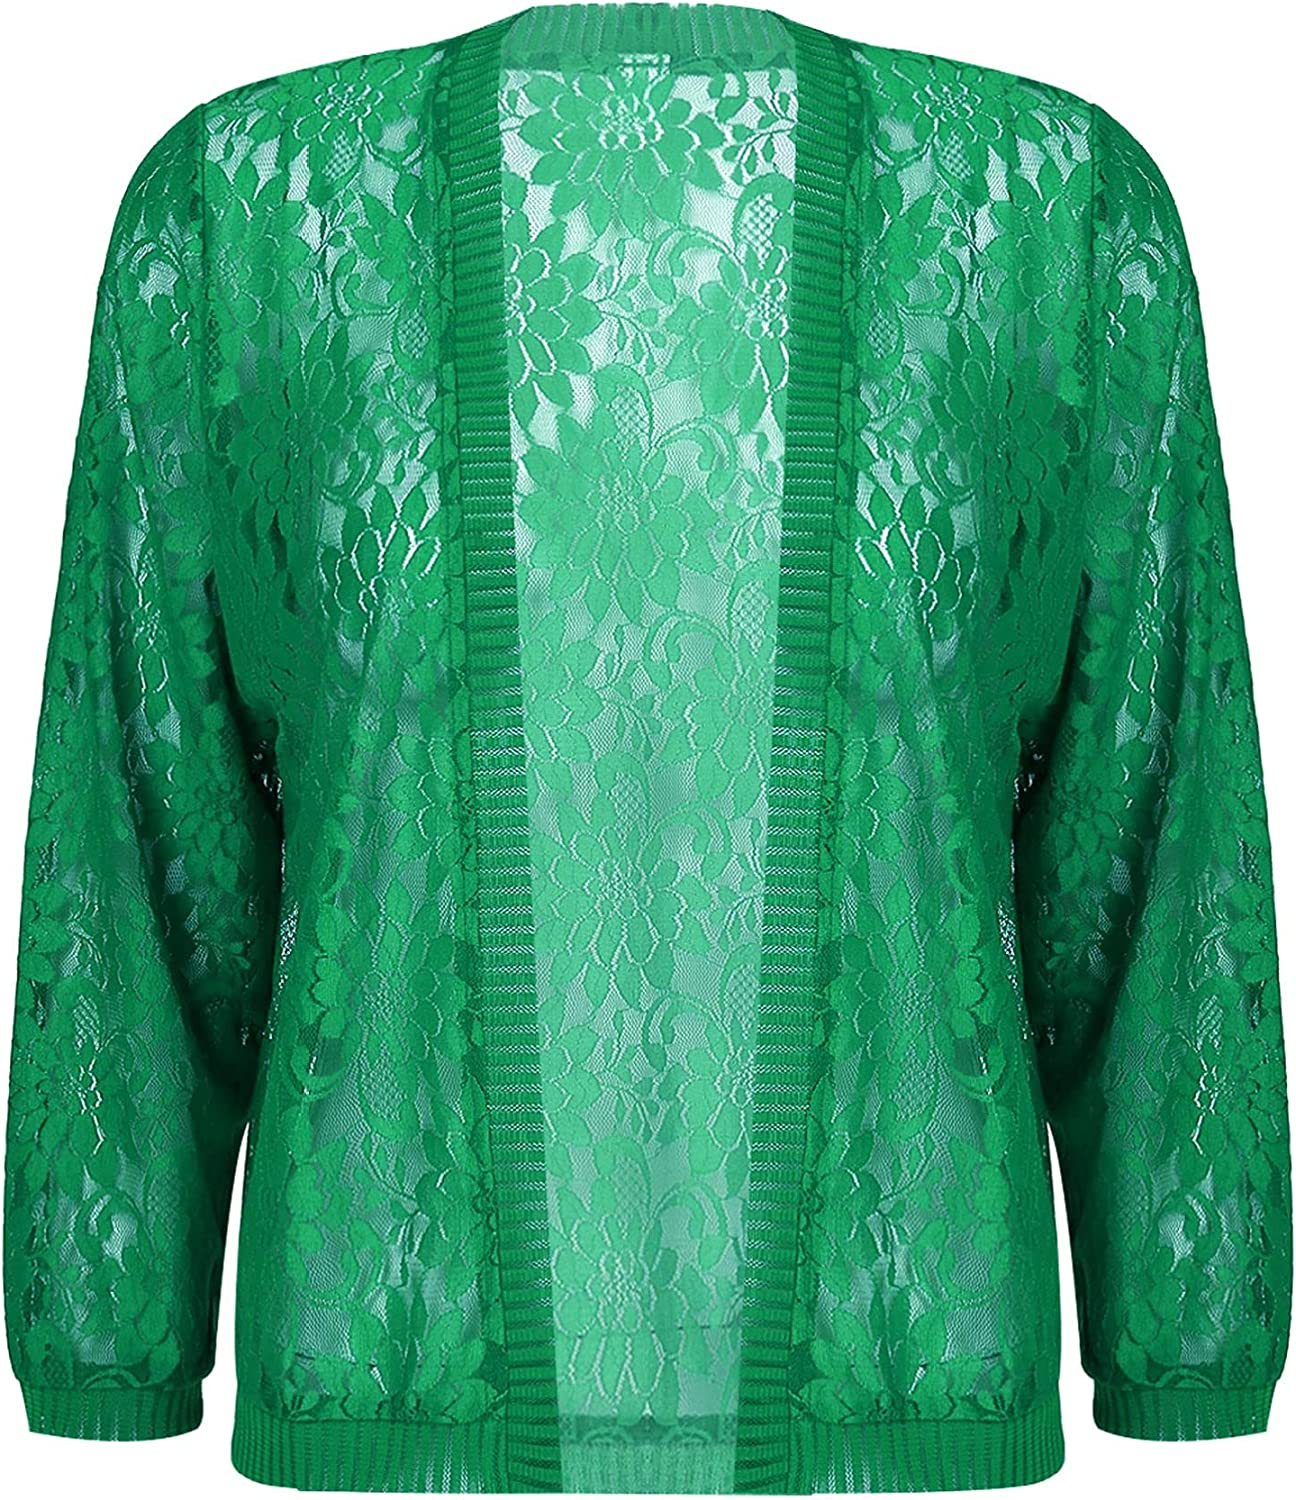 YONGHS Womens Lace Shrug Bolero Cardigan with 3/4 Sleeve Hollow Open Front for Evening Dresses